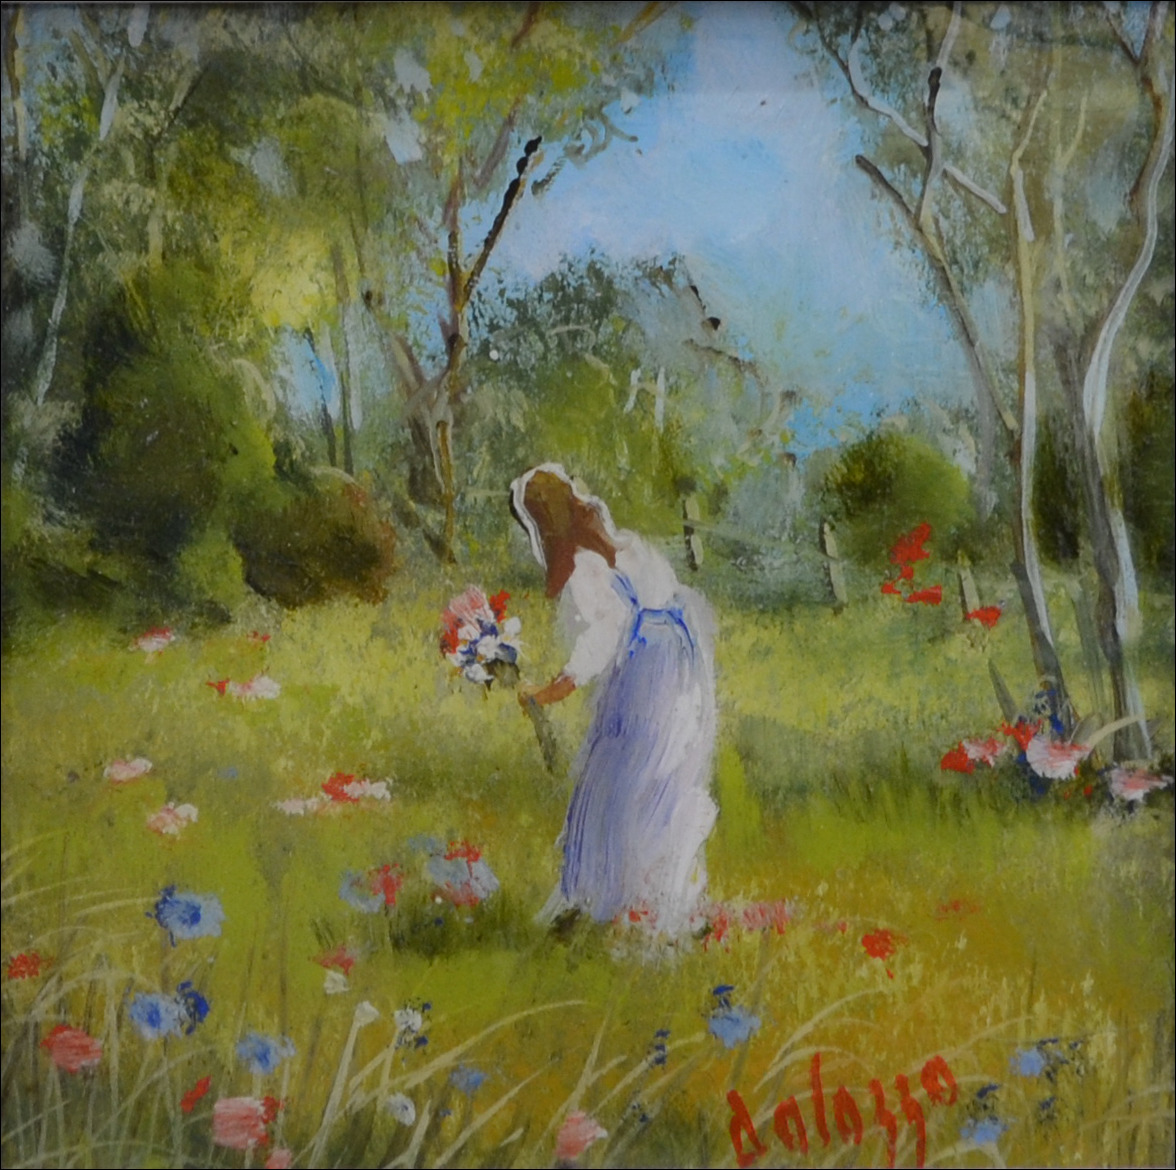 Picking-Flowers-Lucette-Dalozzo